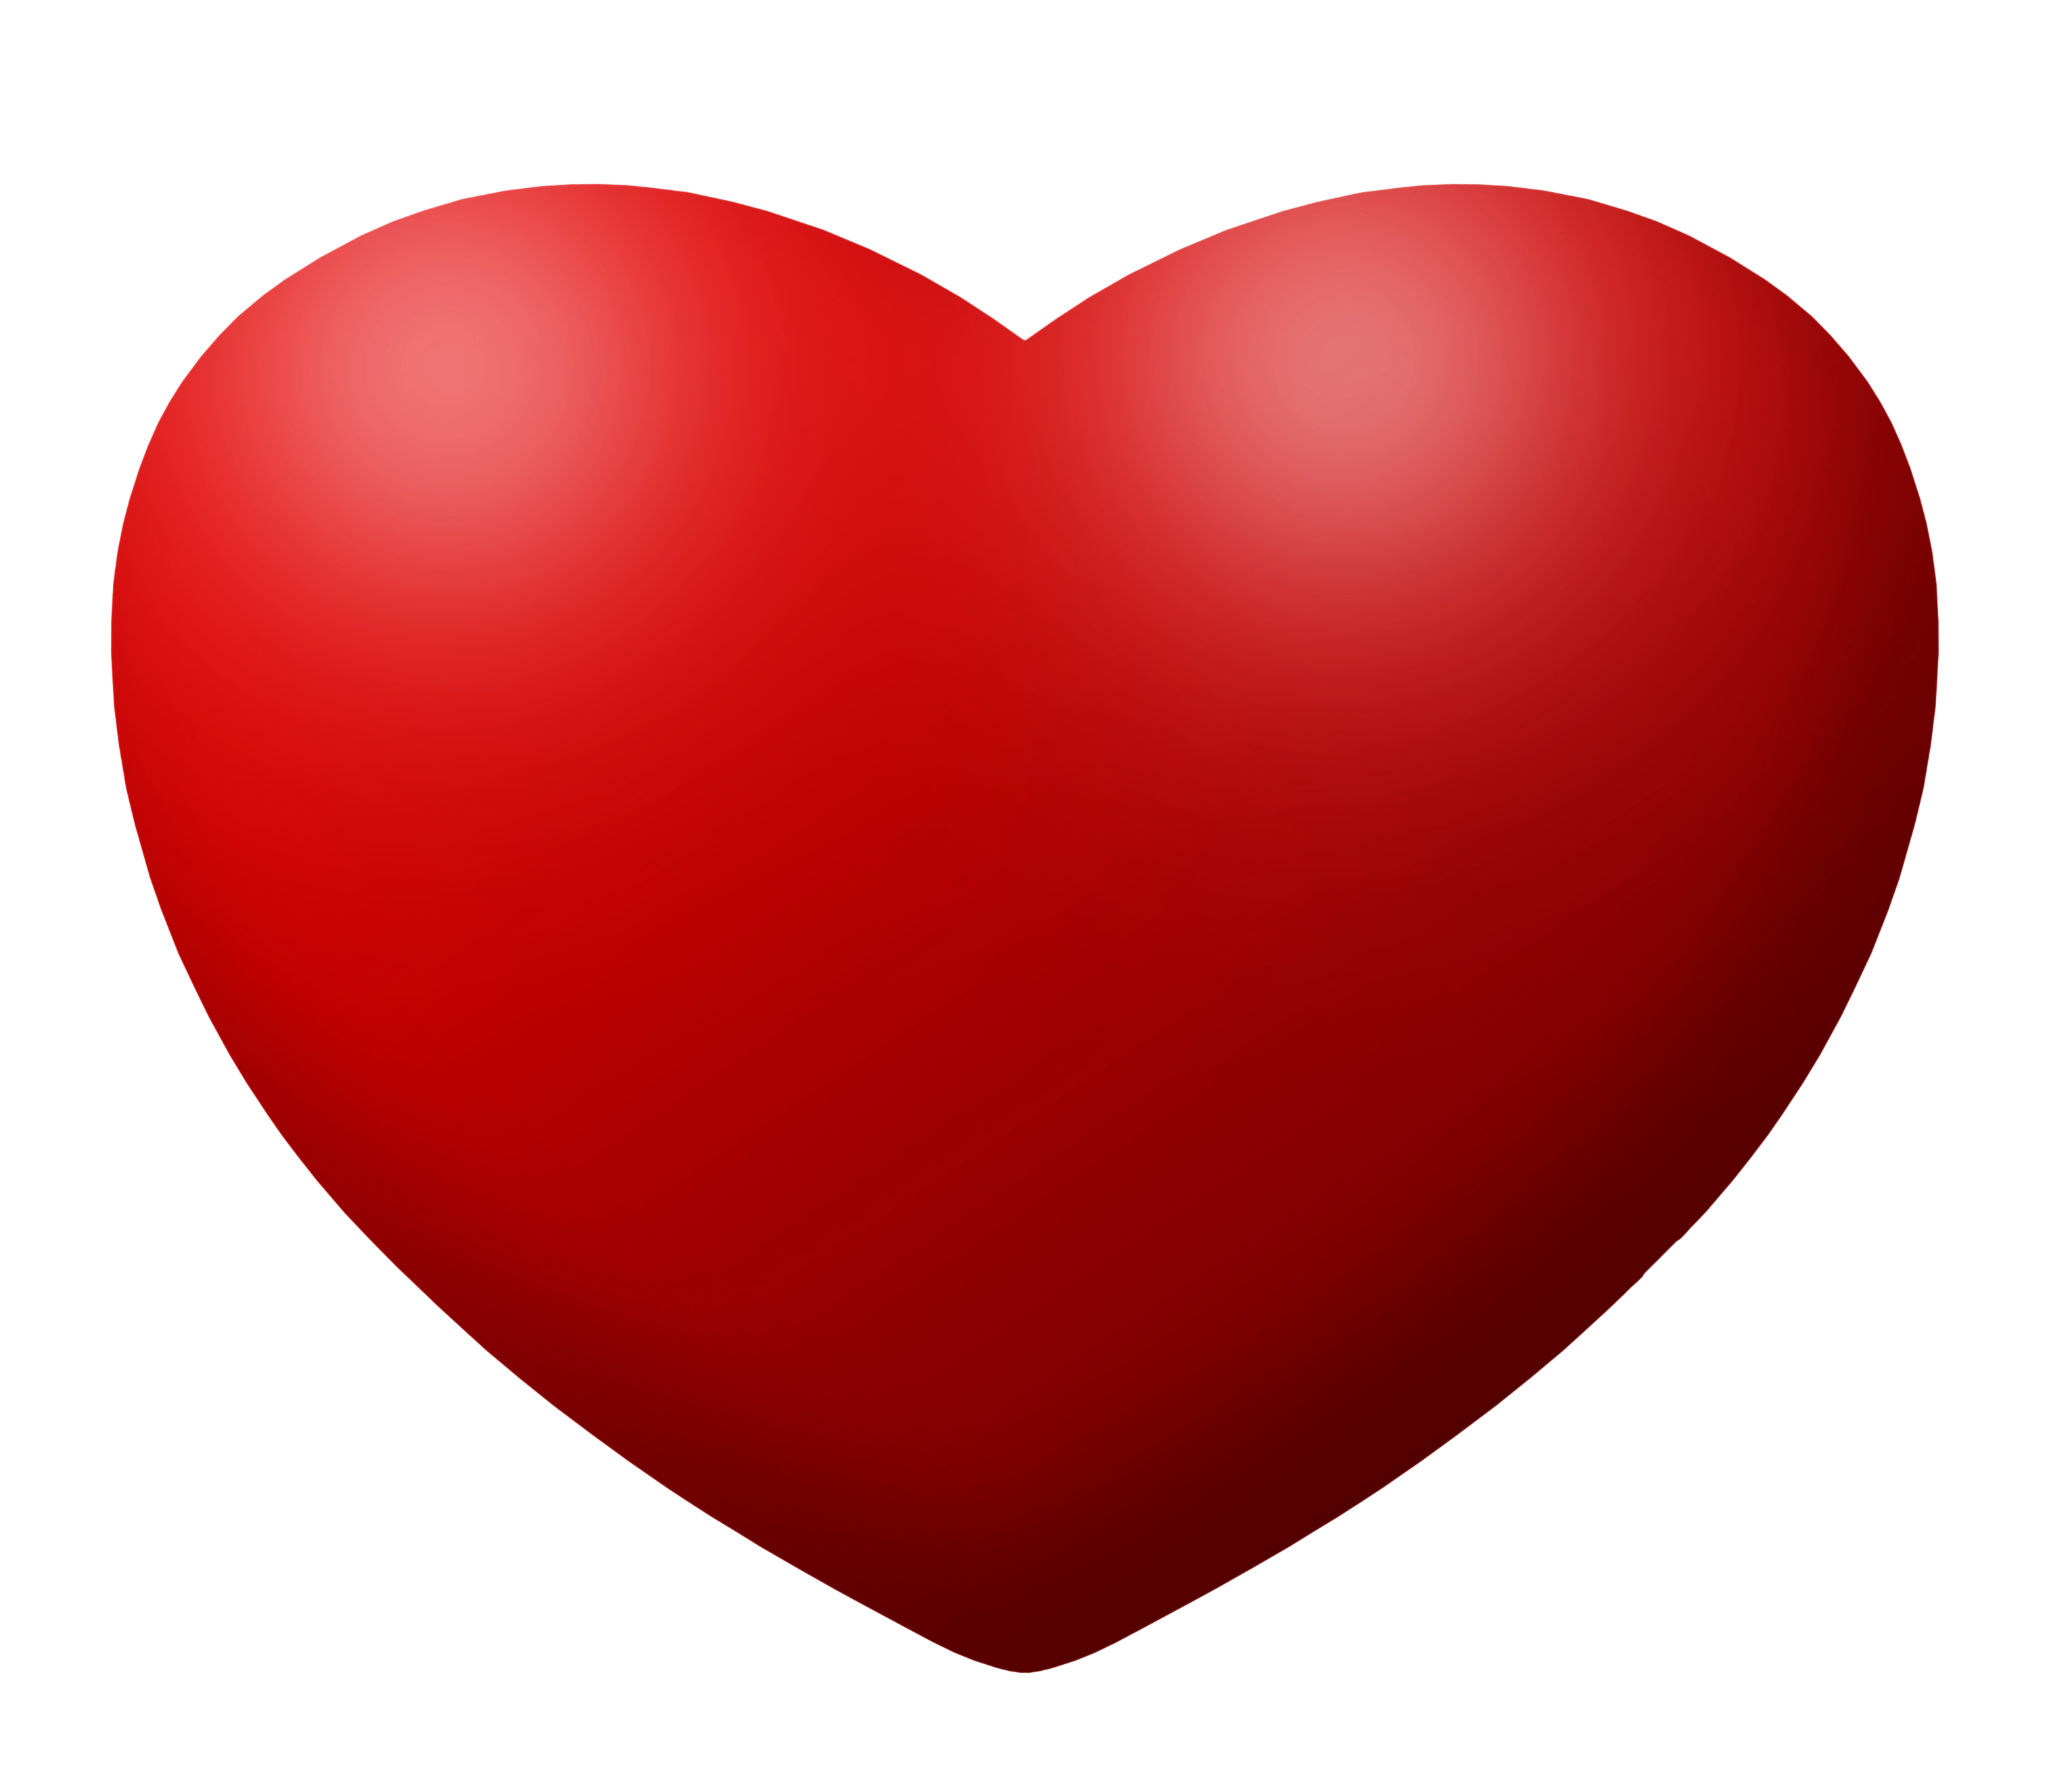 Heart PNG HD Transparent Background - 122742